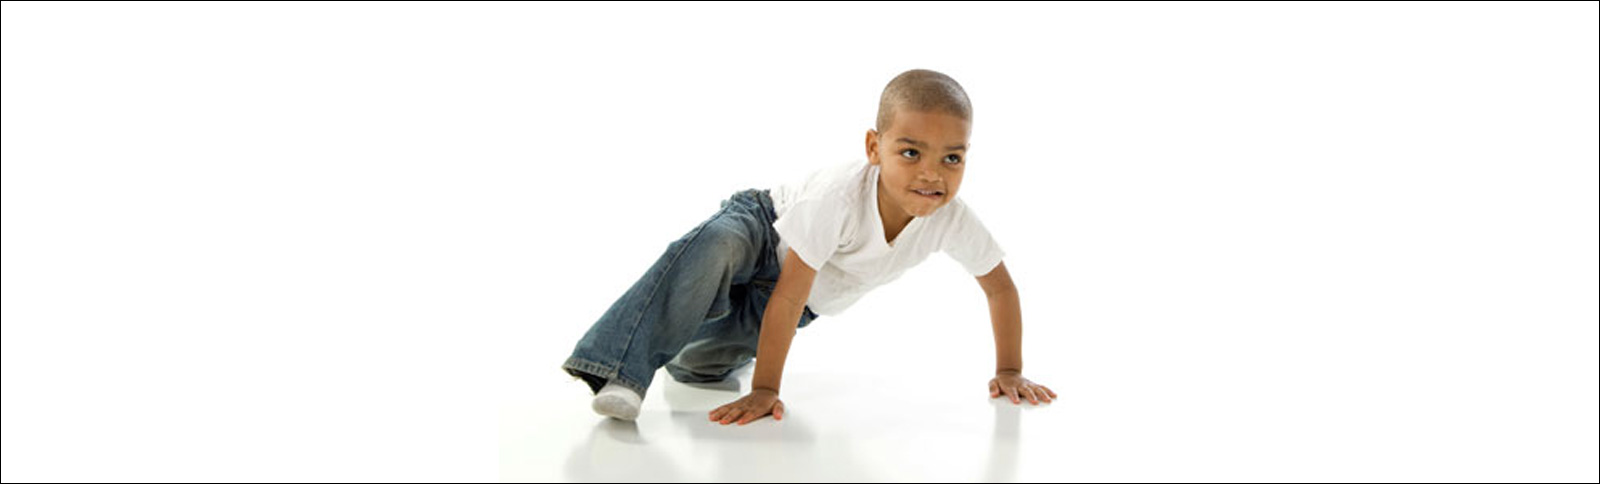 Young Breakdancing Boy